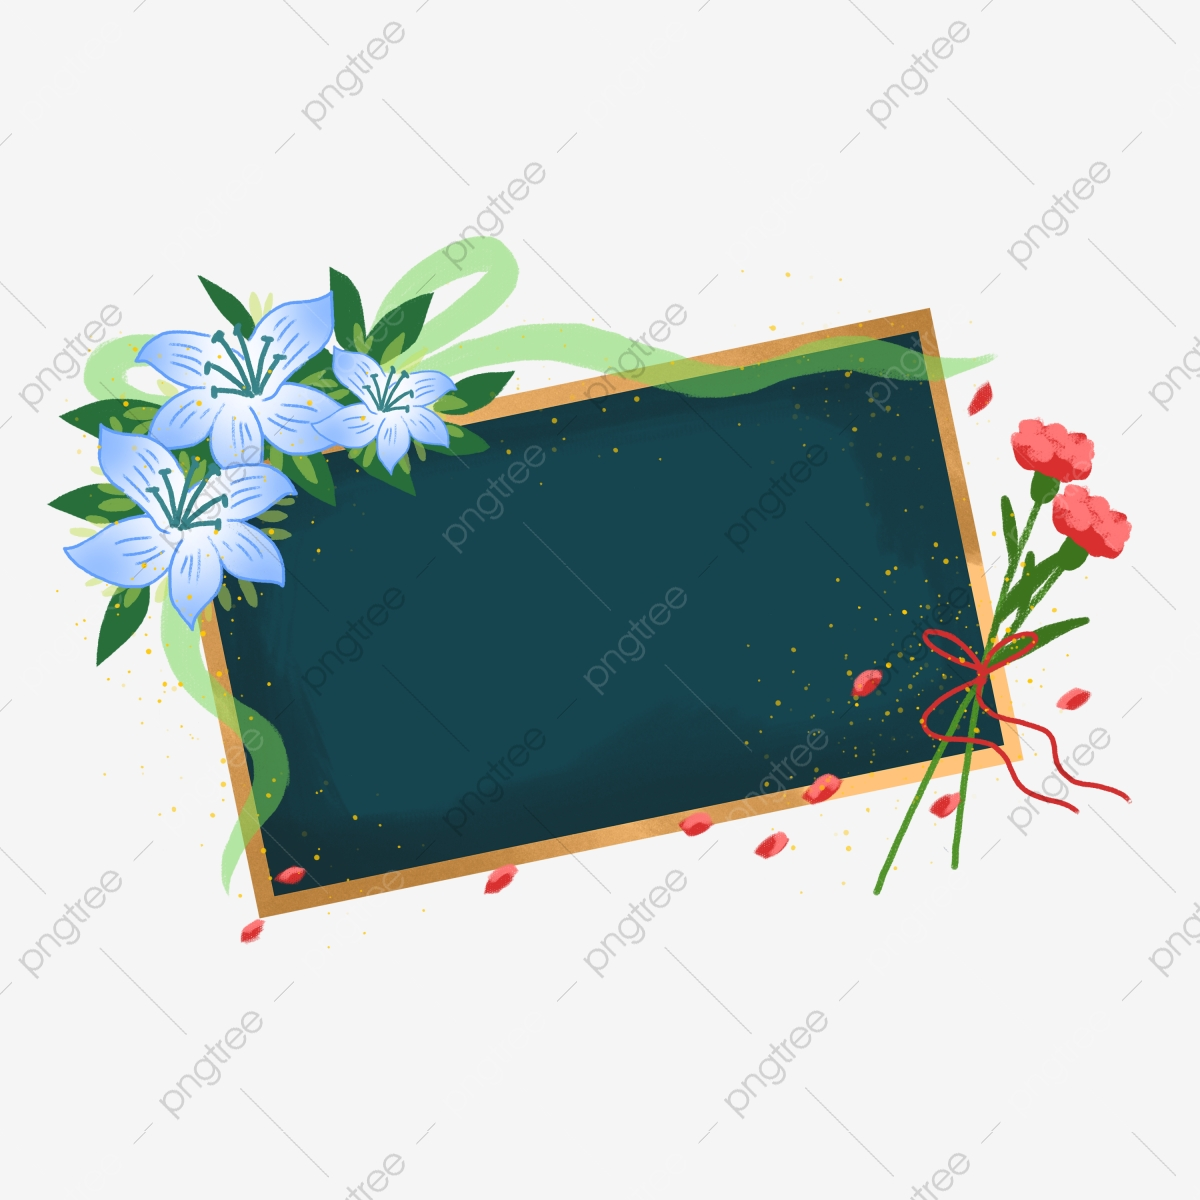 Vector Floral Bouquets On Chalkboard. Black And White Flowers.. Royalty  Free Cliparts, Vectors, And Stock Illustration. Image 80999516.